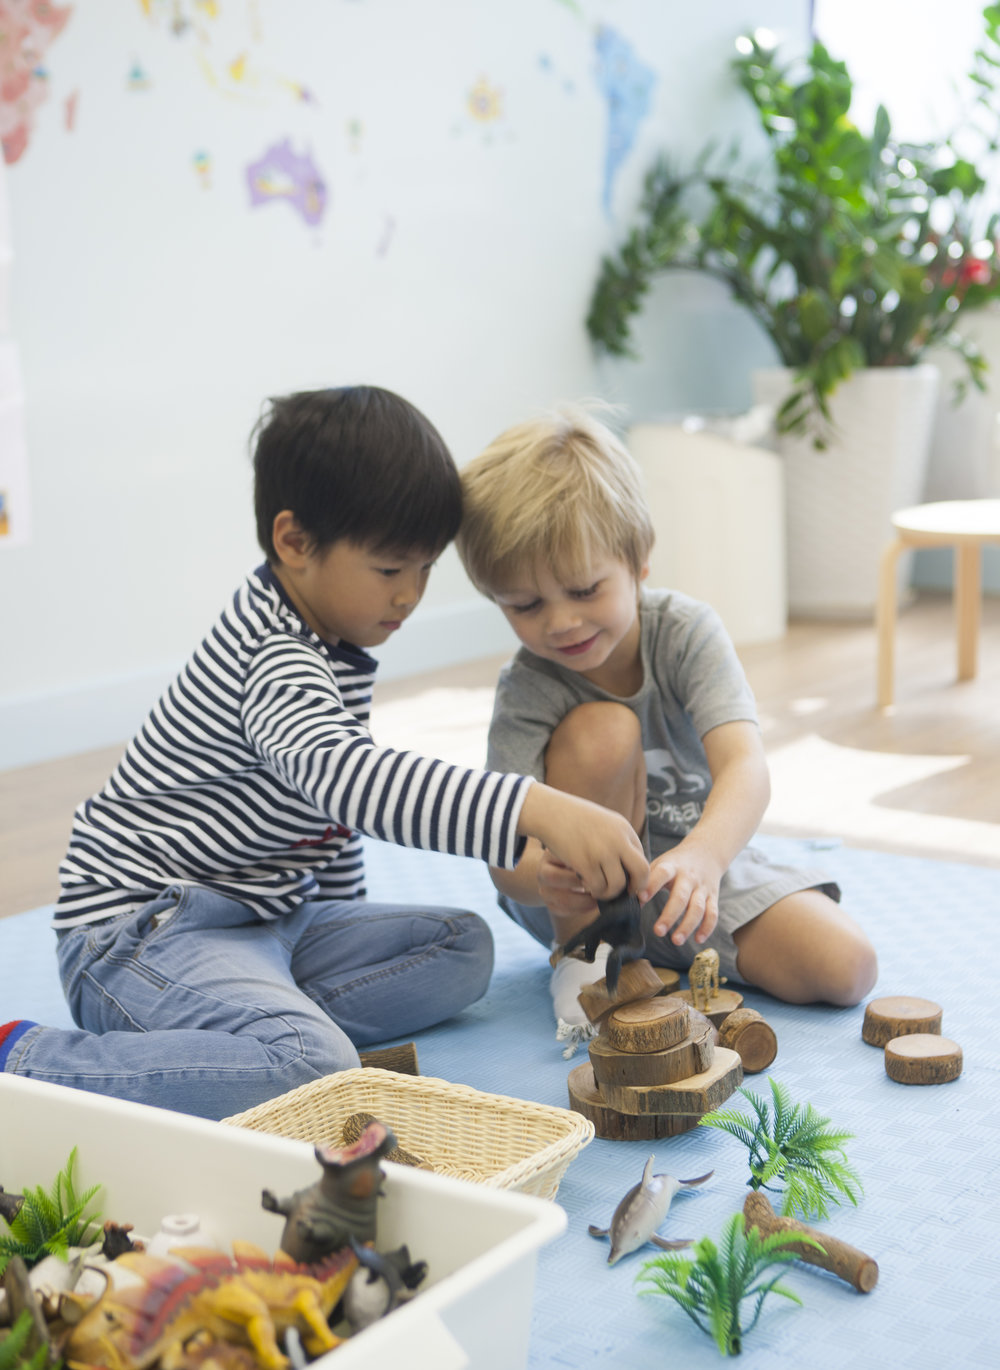 Copy of Preschool Foundation - Creative Play